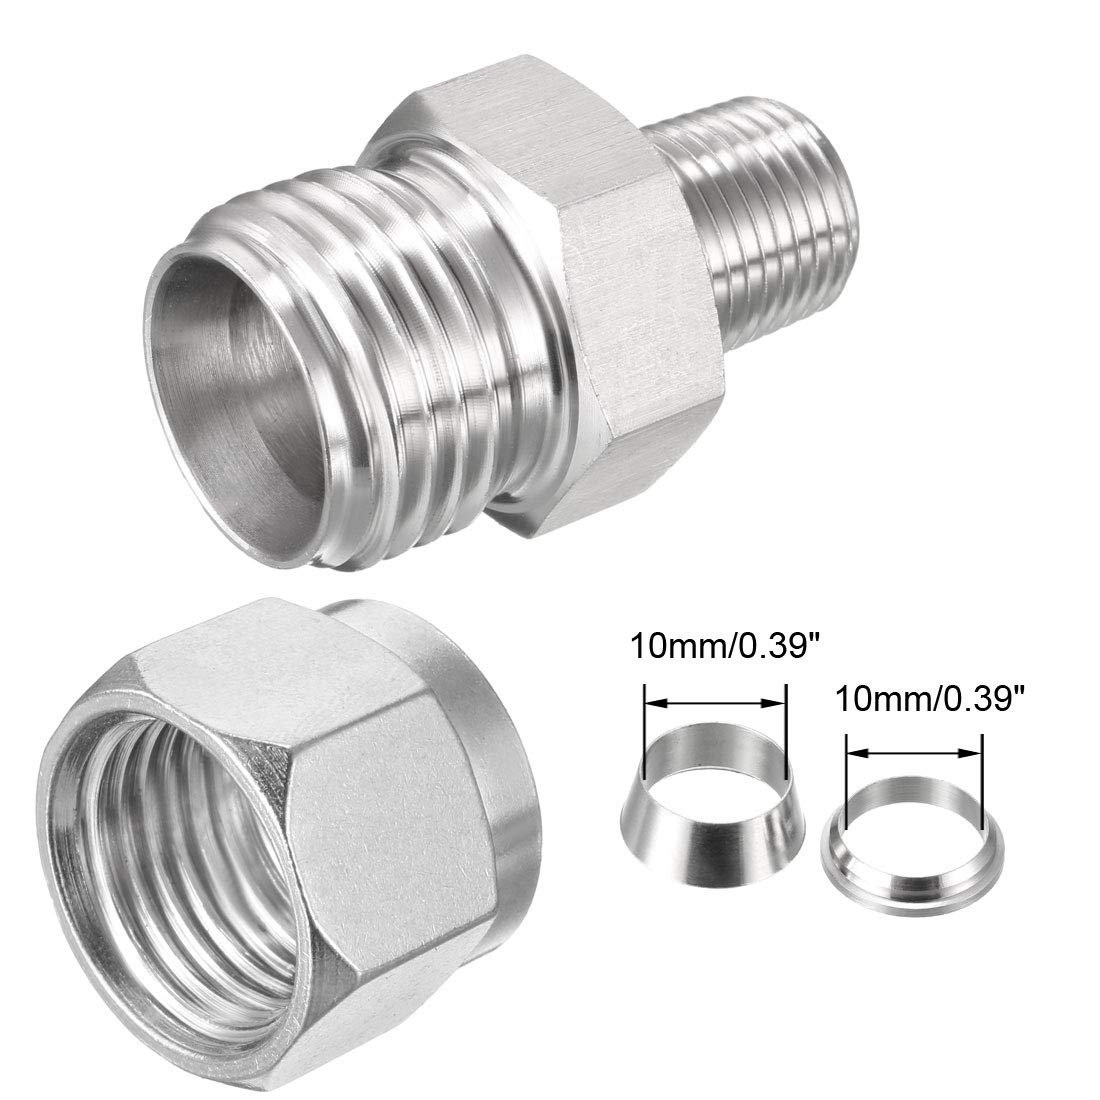 uxcell Stainless Steel Compression Tube Fitting 1//8-inch NPT Male x Ф10 Tube OD